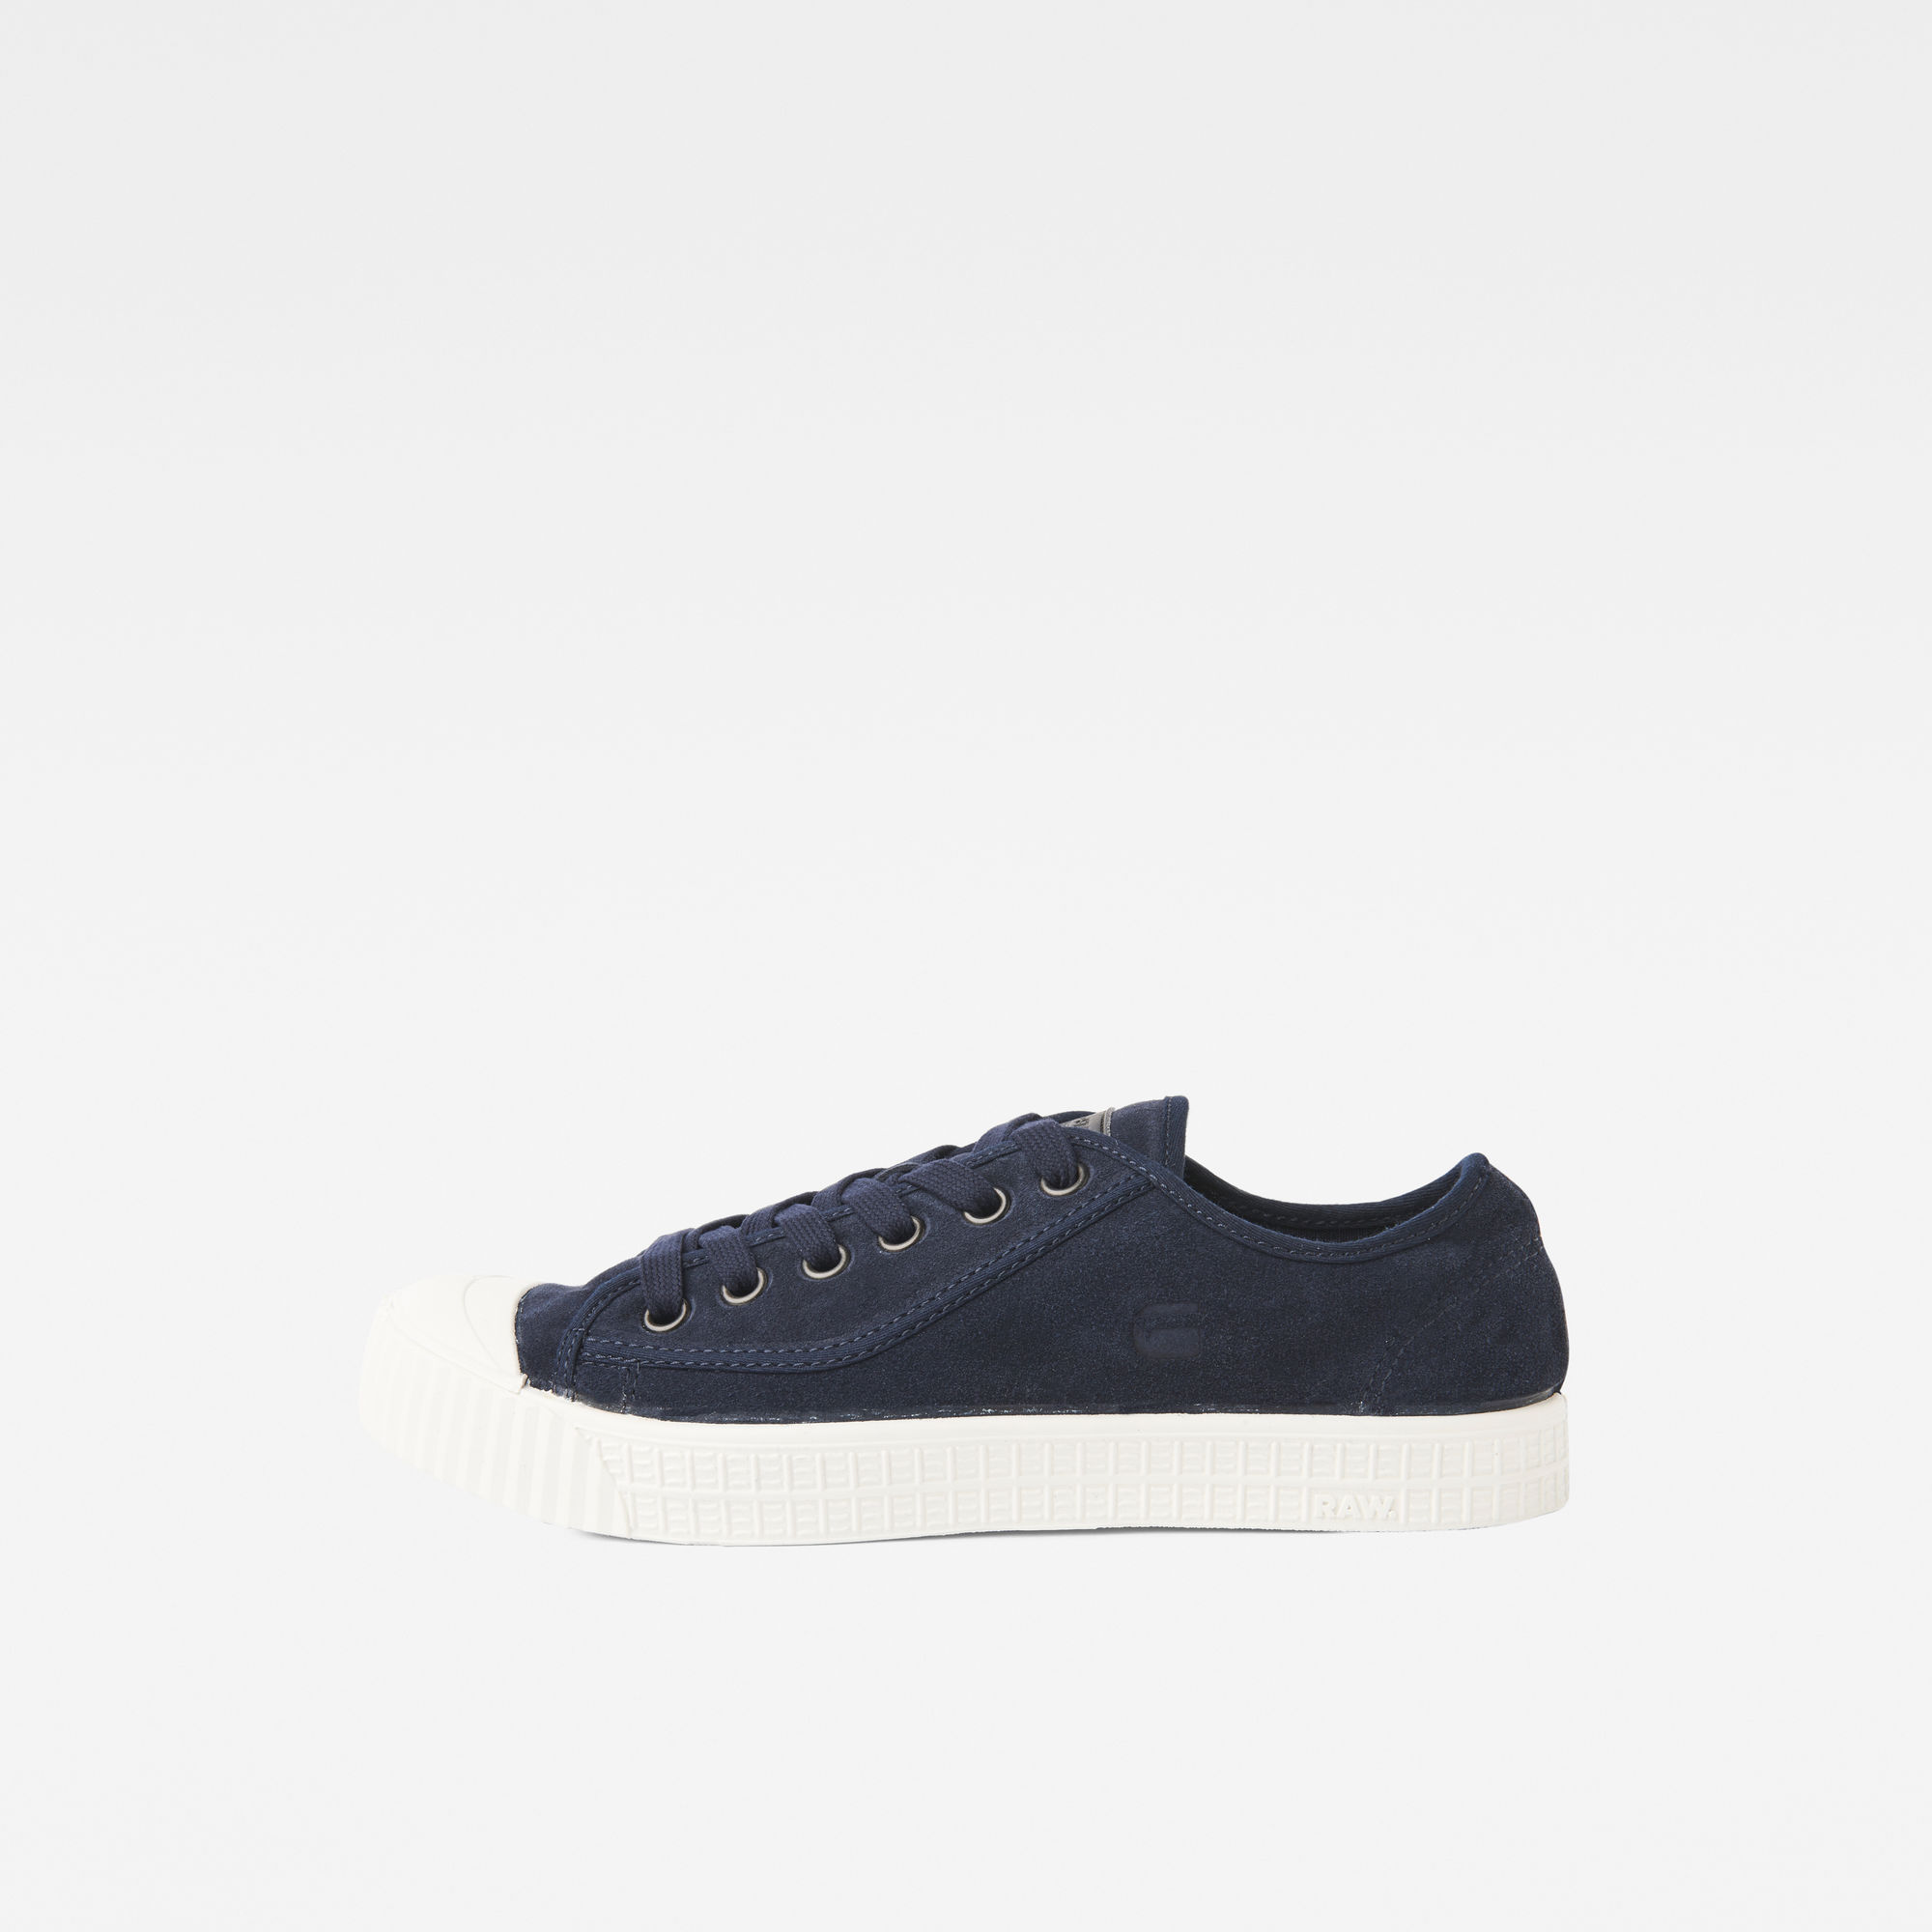 Image of G Star Raw Rovulc Suede Low Sneakers